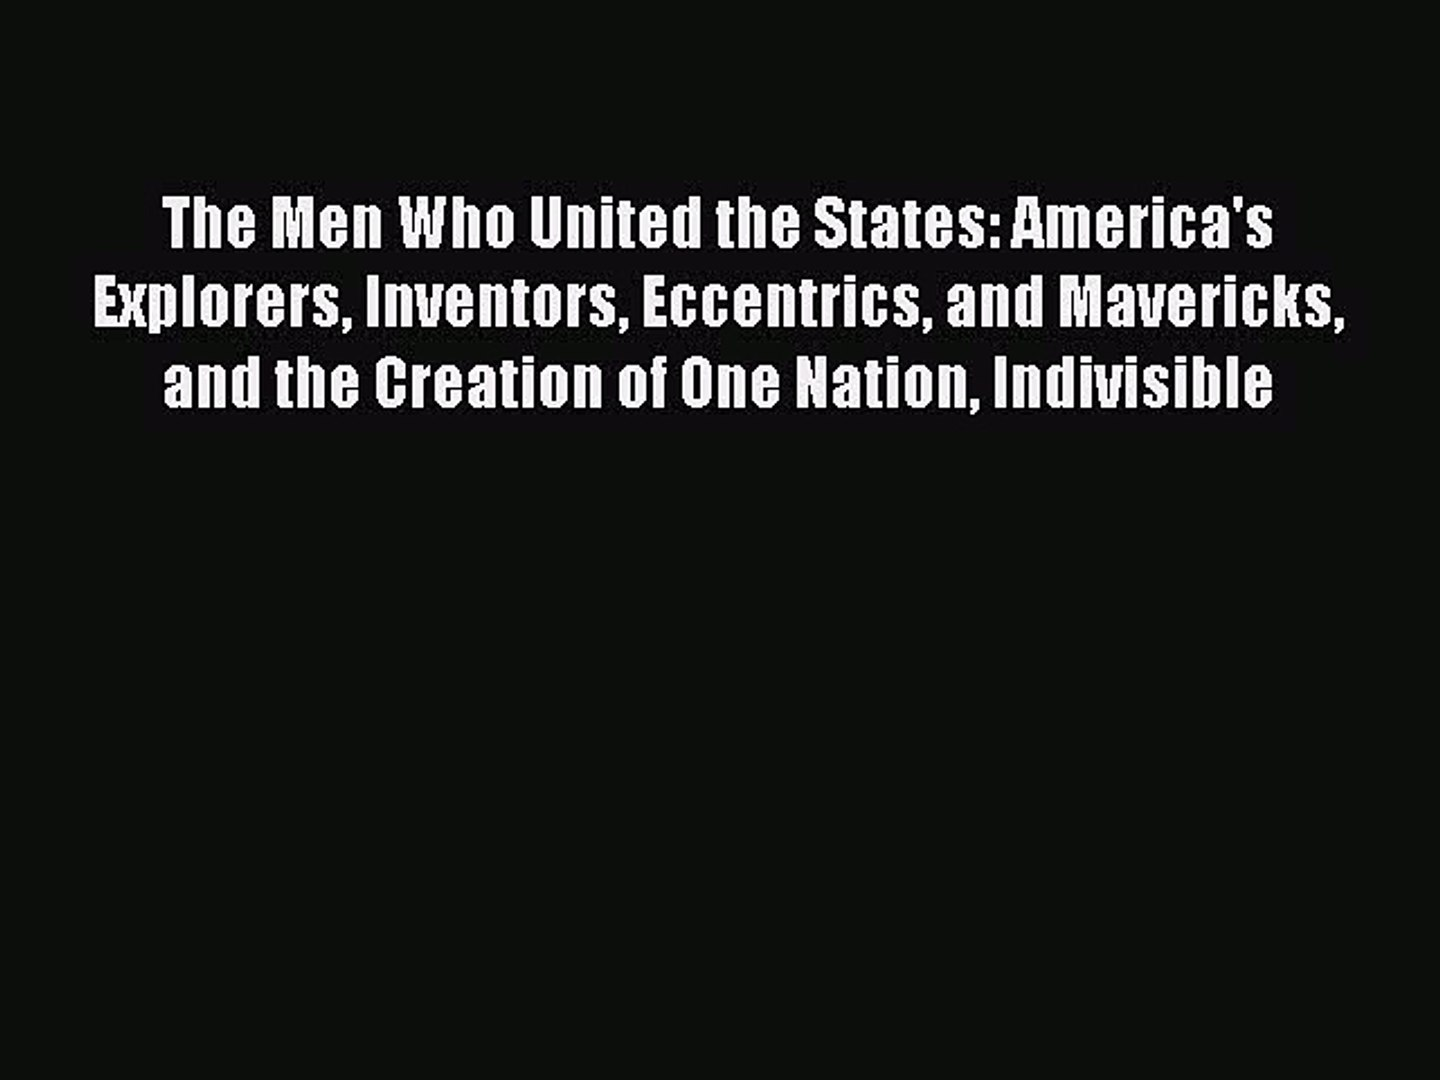 The Men Who United the States: Americas Explorers and the Creation of One Nation Indivisible Eccentrics Inventors and Mavericks